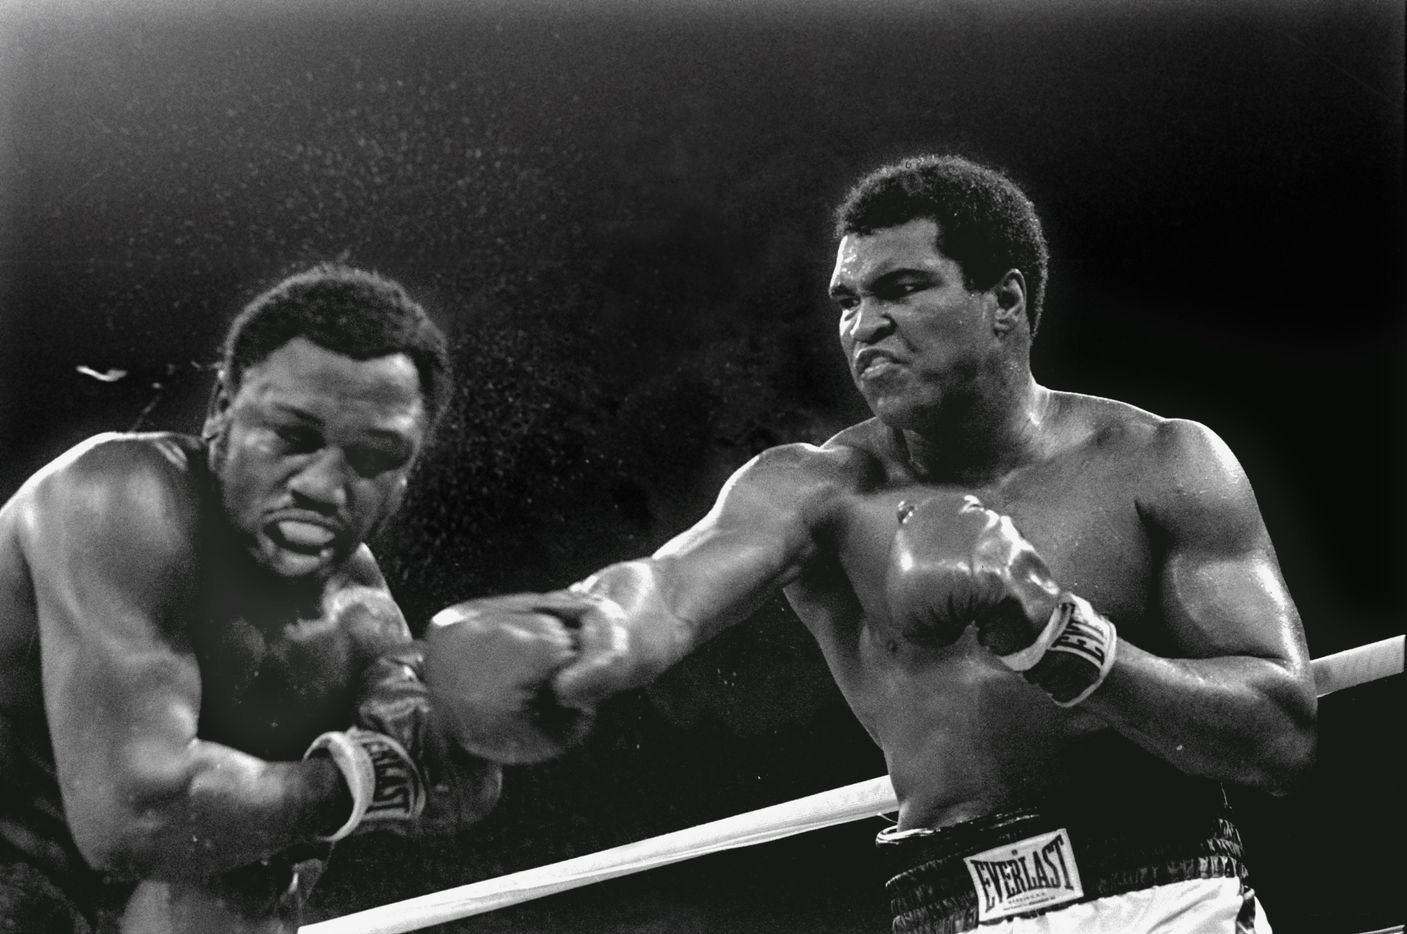 In this Oct. 1, 1975 file photo, sweat spray flies from the head of challenger Joe Frazier as heavyweight champion Muhammad Ali connects with a right in the ninth round of their heavyweight title fight in Manila, Philippines. Ali won the fight on a decision to retain the title.